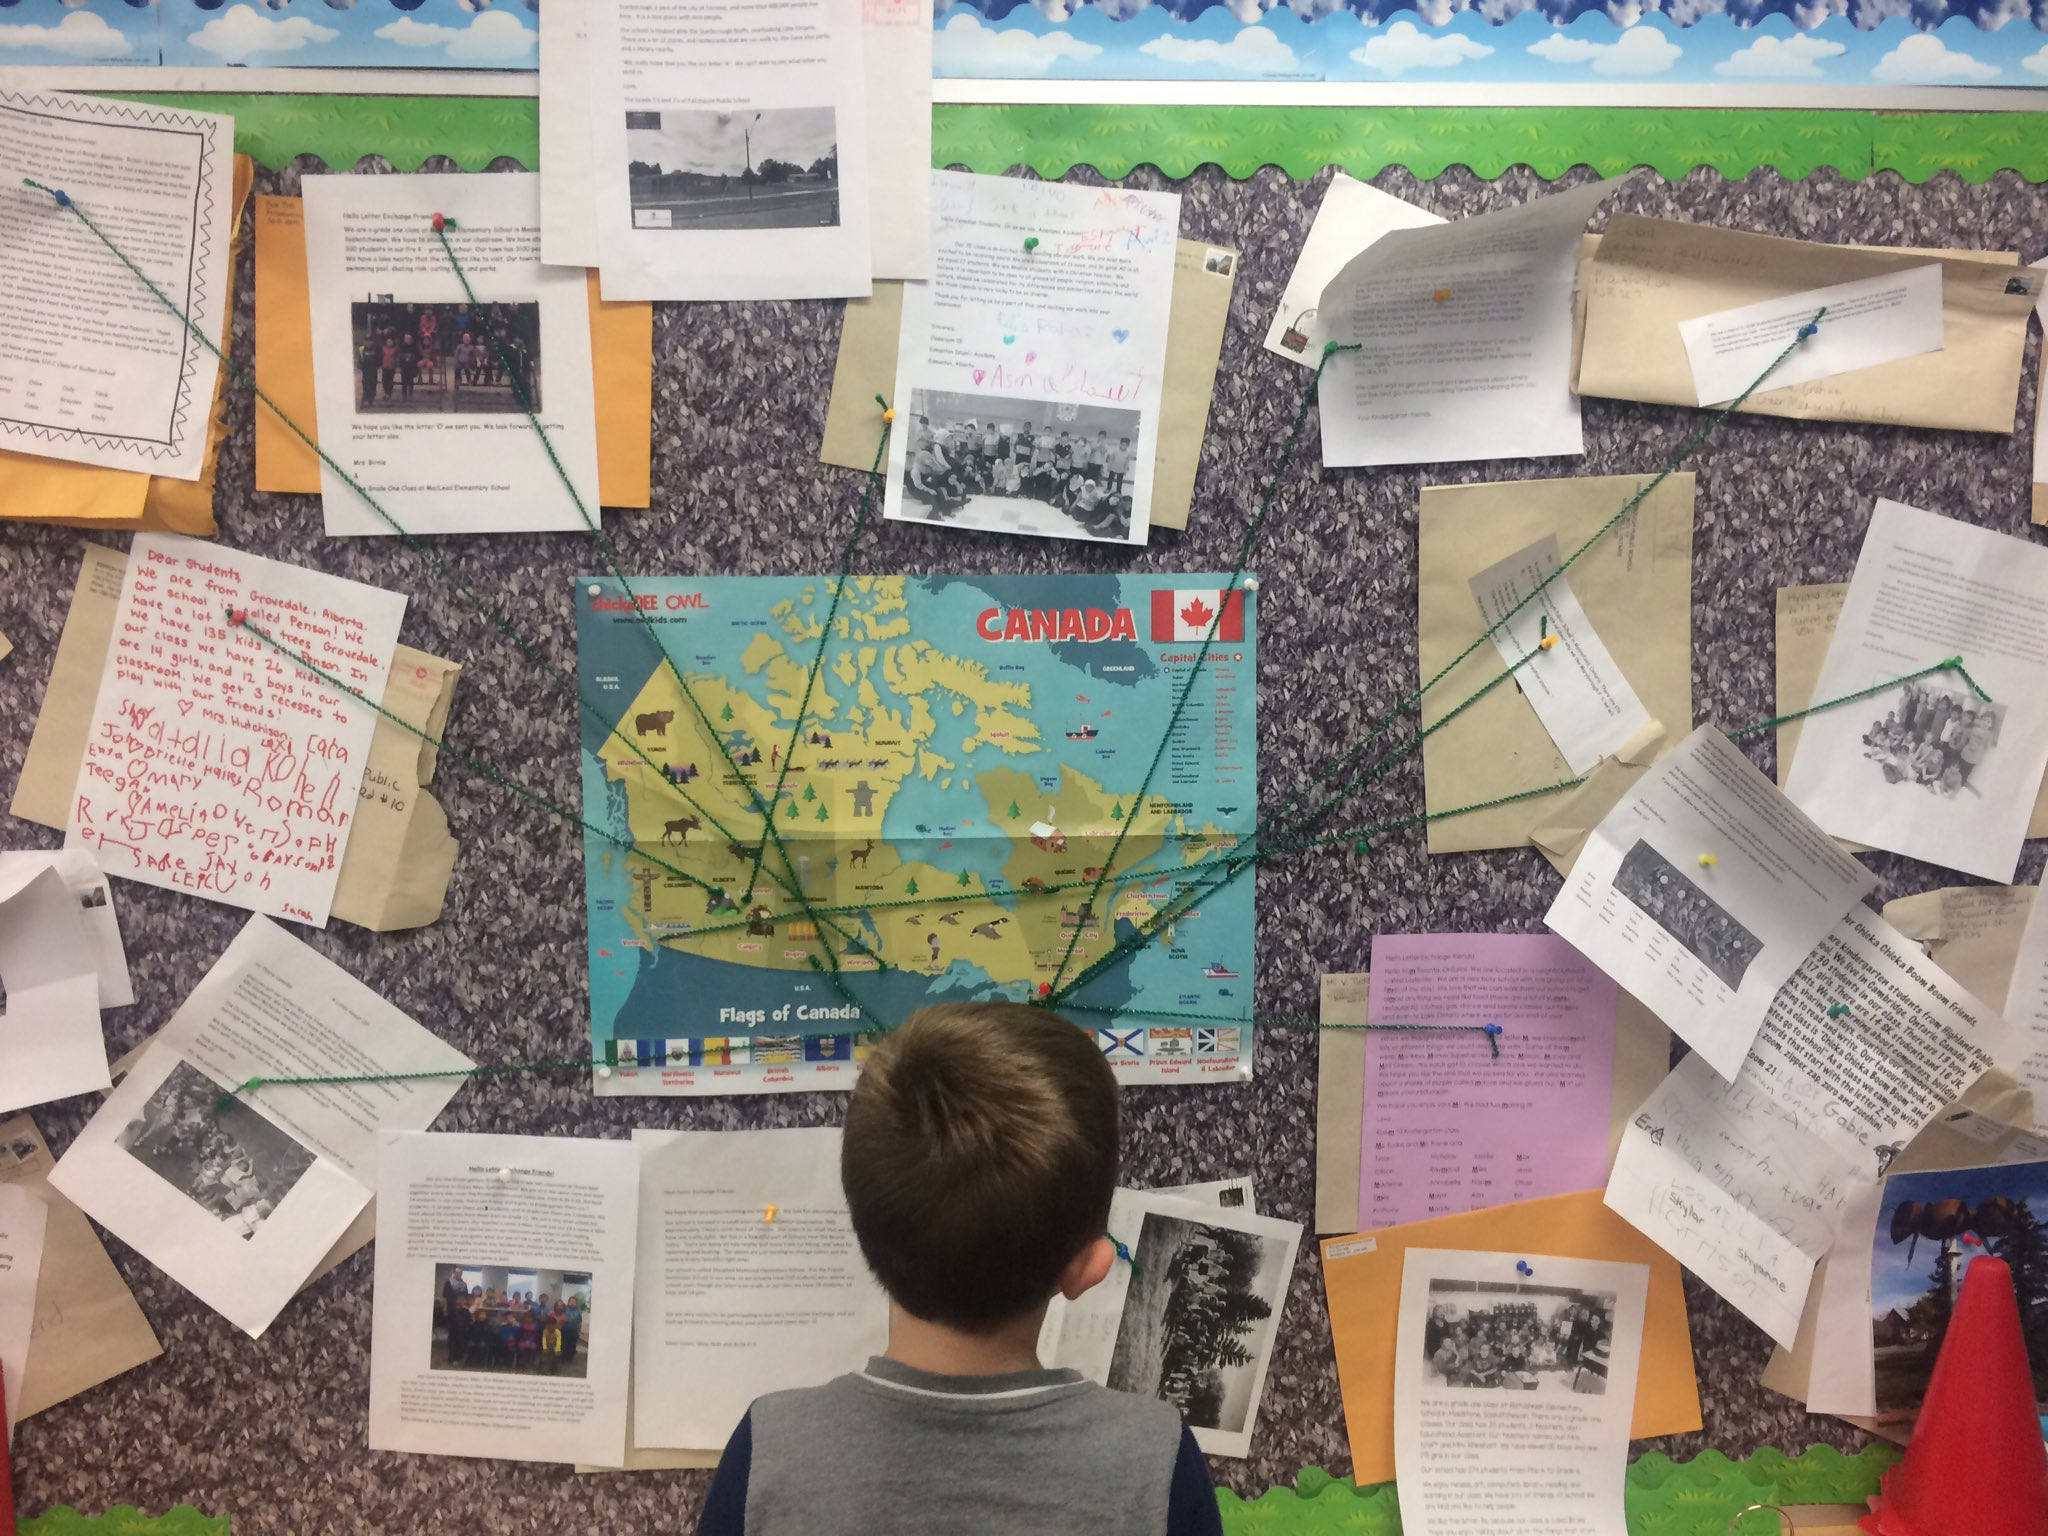 Getting mail is so exciting. Students @vkgreerps FDK class showed me the many letters they've received from all over Canada. #tldsblearns https://t.co/ZMO3UD5tMi